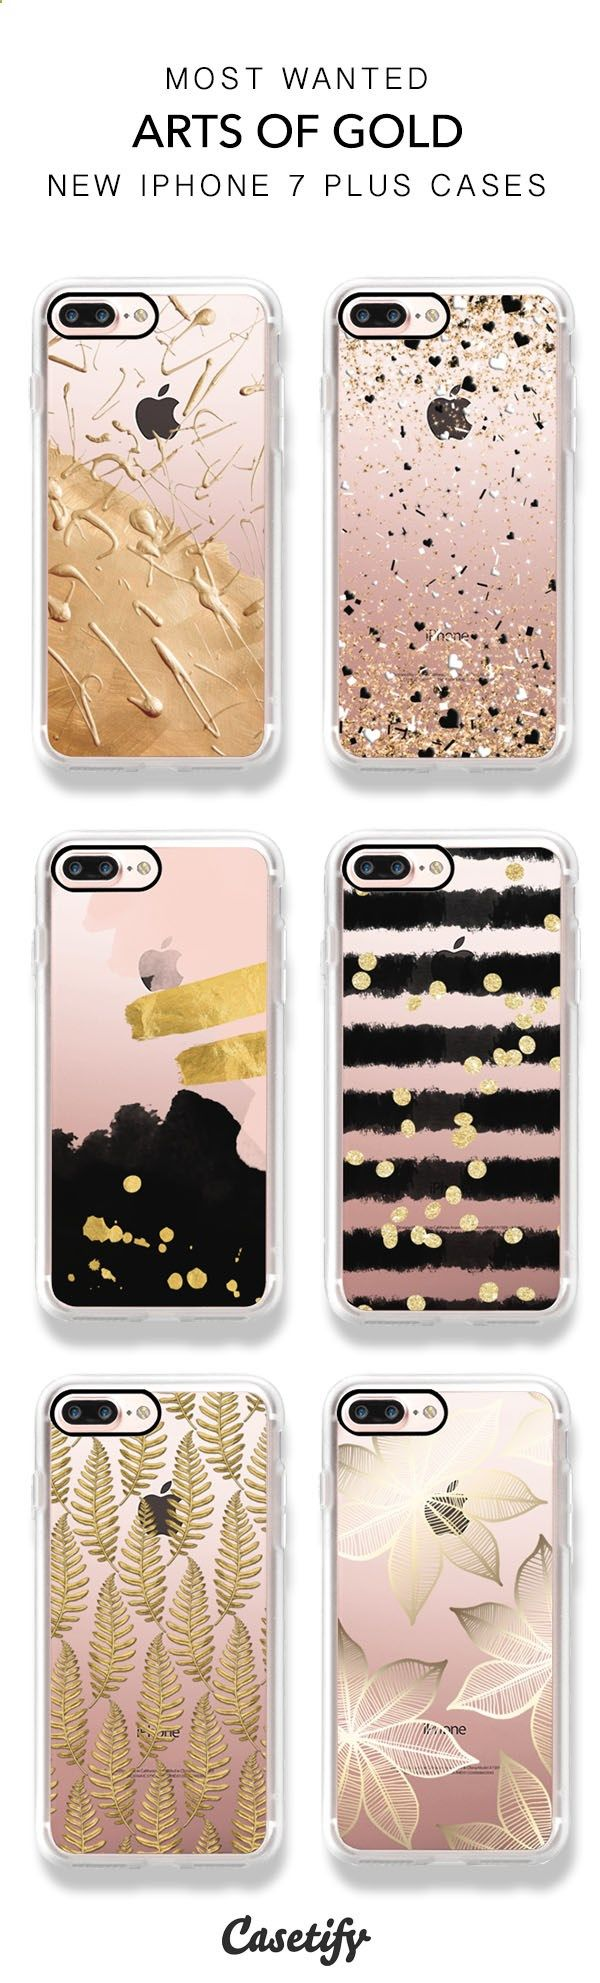 Best selling Gold and Bold iPhone 7 and iPhone 7 Plus cases. Shop the Art of Gold Collection here > www.casetify.com/... Cell Phone, Cases & Covers... http://www.ebay.com/sch/i.html?_from=R40&_trksid=p4712.m570.l1313.TR10.TRC0.A0.H1.Xcell+phone+cases+and+covers.TRS0&_nkw=cell+phone+cases+and+covers&_sacat=0